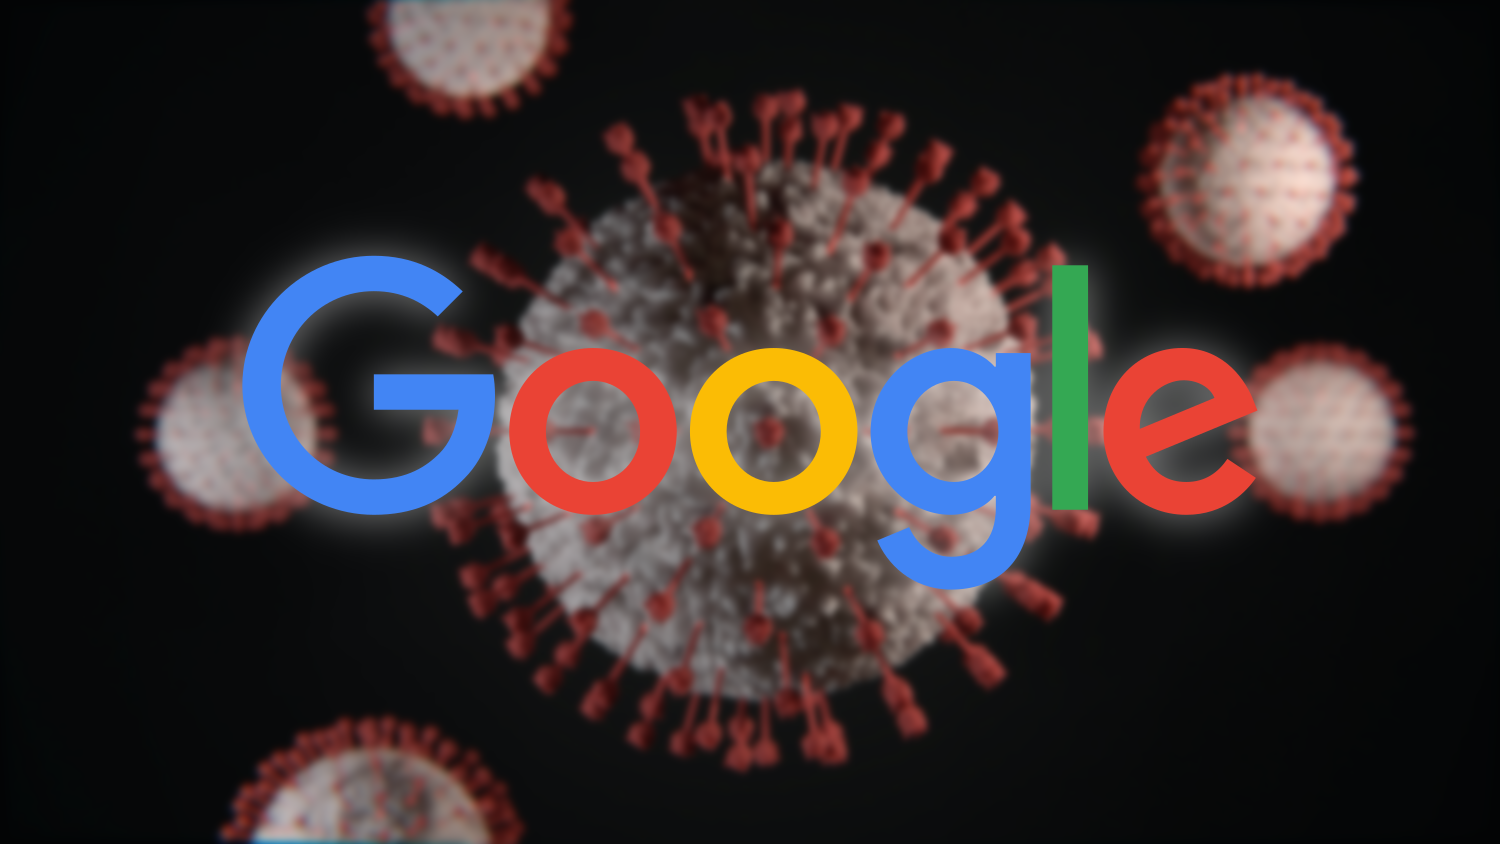 Here's how Google is helping with coronavirus information and education